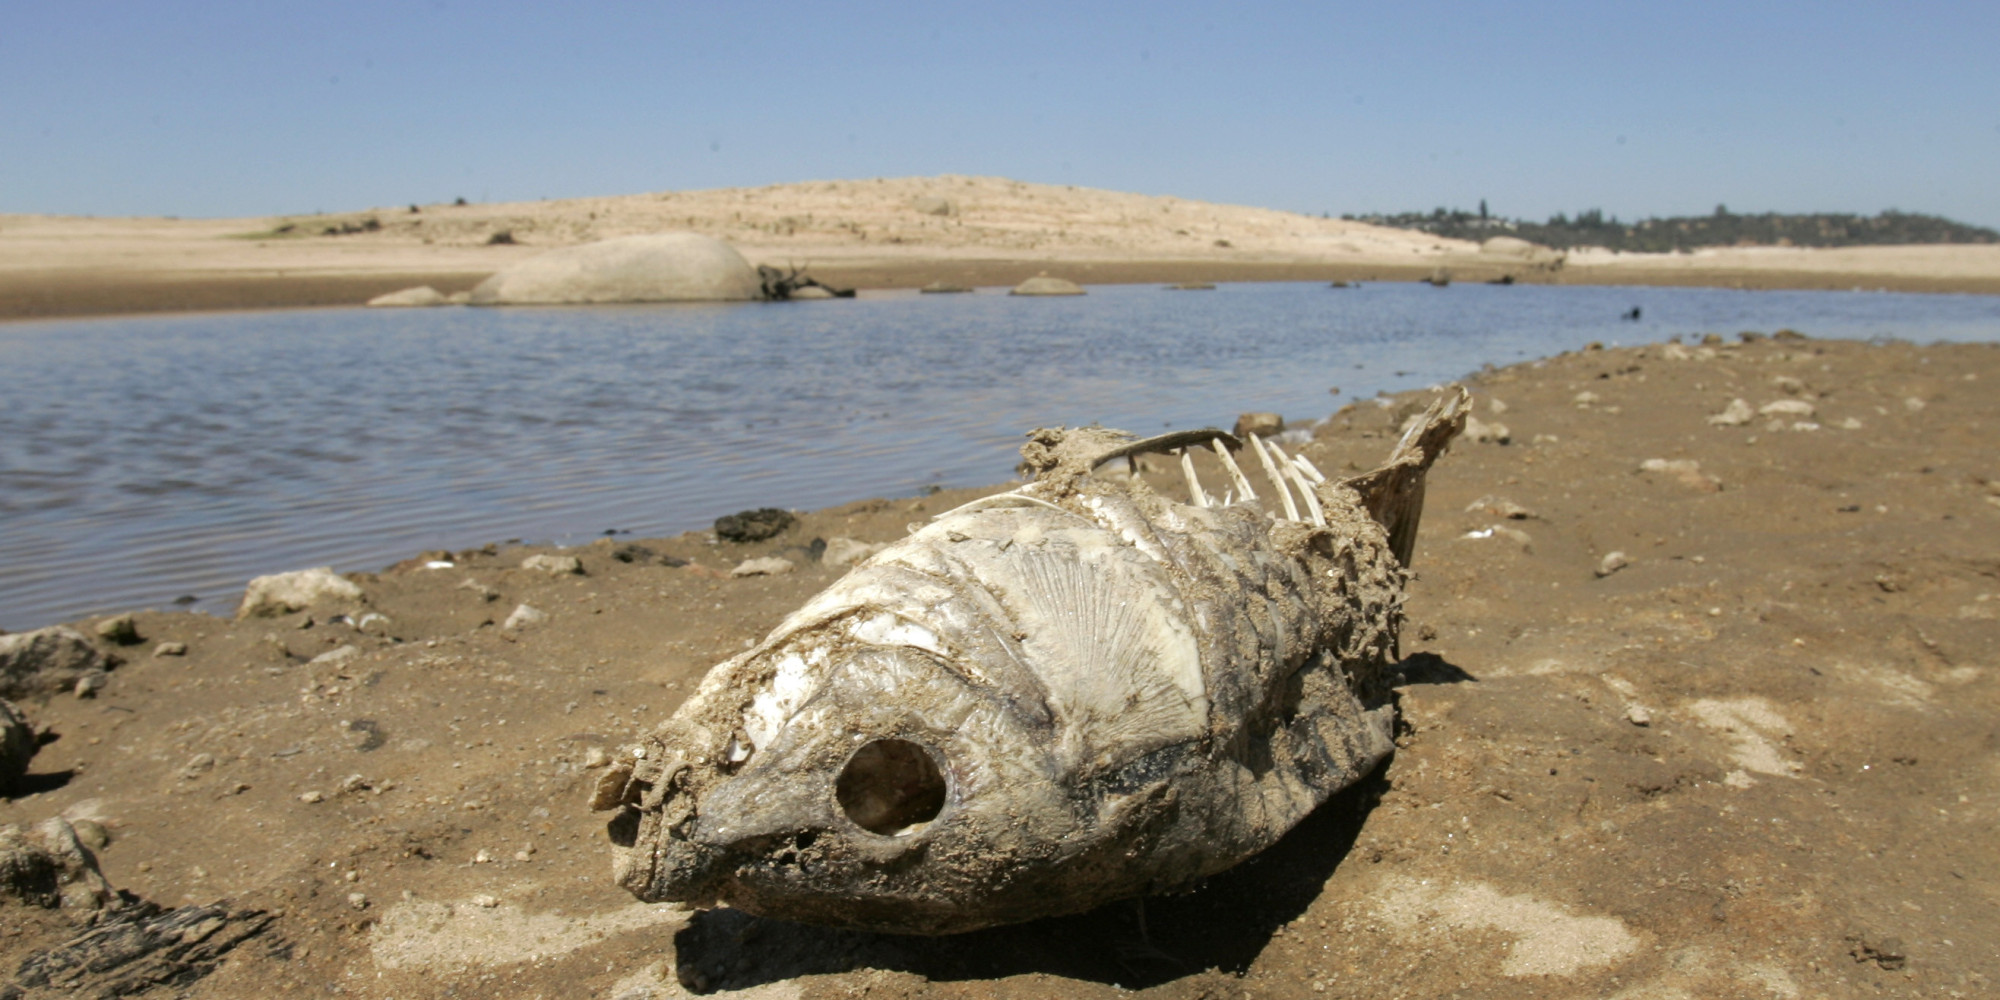 The remains of a fish are seen along the banks of Folsom Lake which is at 31 percent of its capacity, near Folsom, Calif., Thursday, Sept. 4, 2008.  With forecasters predicting another dry winter, the Department of Water Resources announced plans to buy water from rice farmers and water agencies in the Sacramento Valley, and sell it to cities and growers in the drier southern half of the state.  (AP Photo/Rich Pedroncelli)